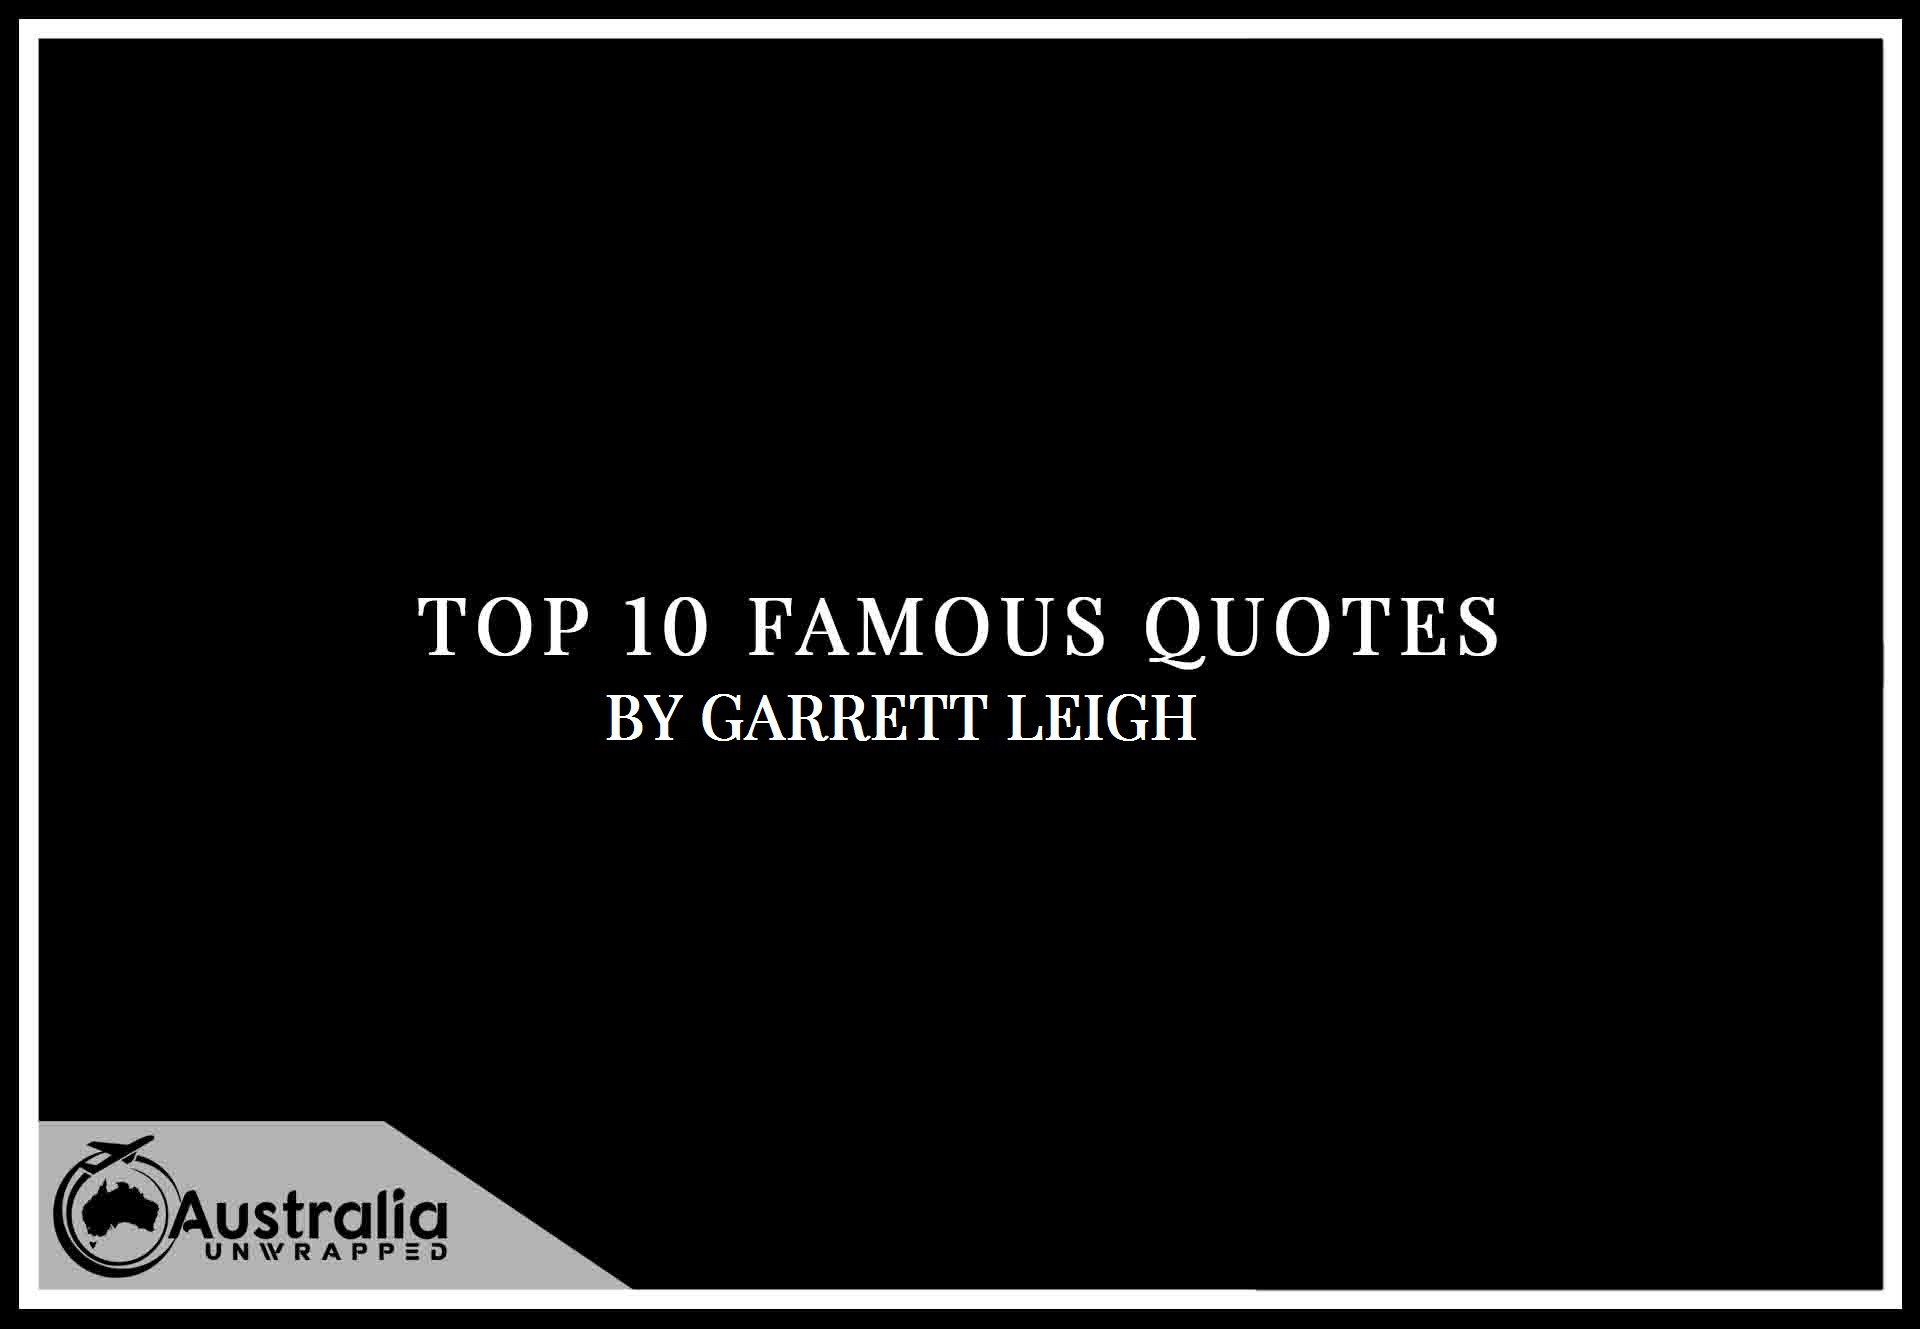 Garrett Leigh's Top 10 Popular and Famous Quotes